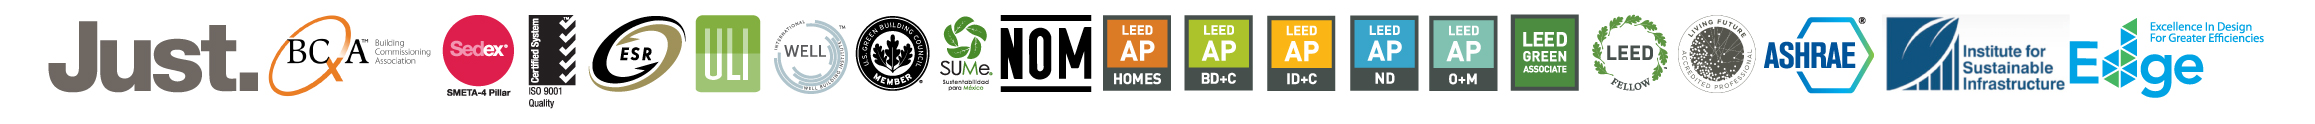 CERTIFICACIONES LEED AP, LEED Fellow, Edge, ESR, ISO 9001, SUME, WELL